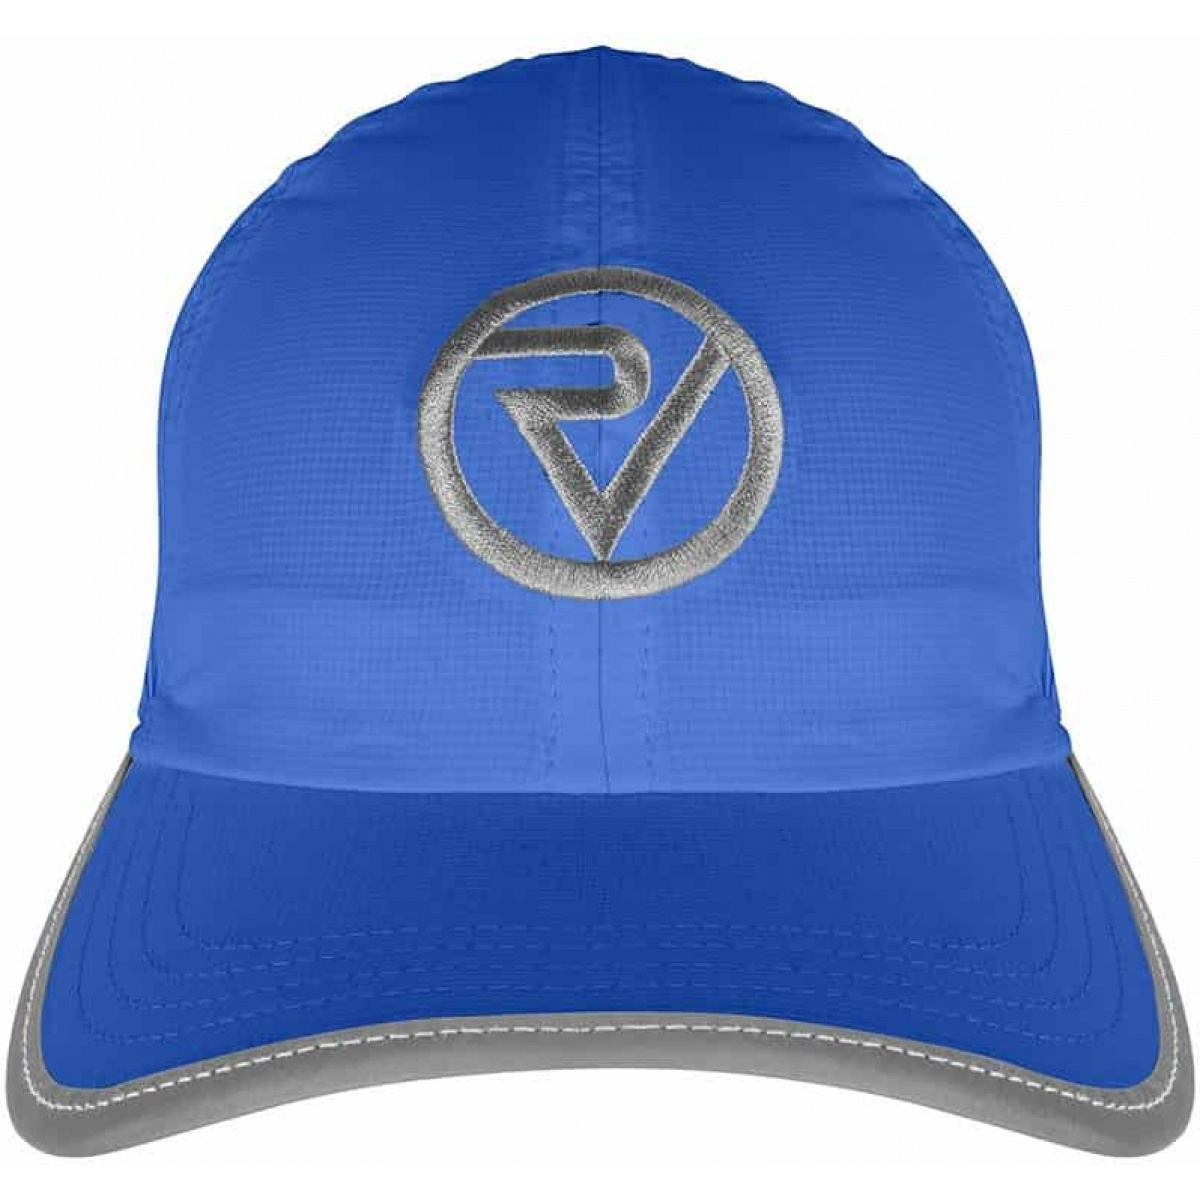 Proviz Classic Running Hat Blue with reflective details